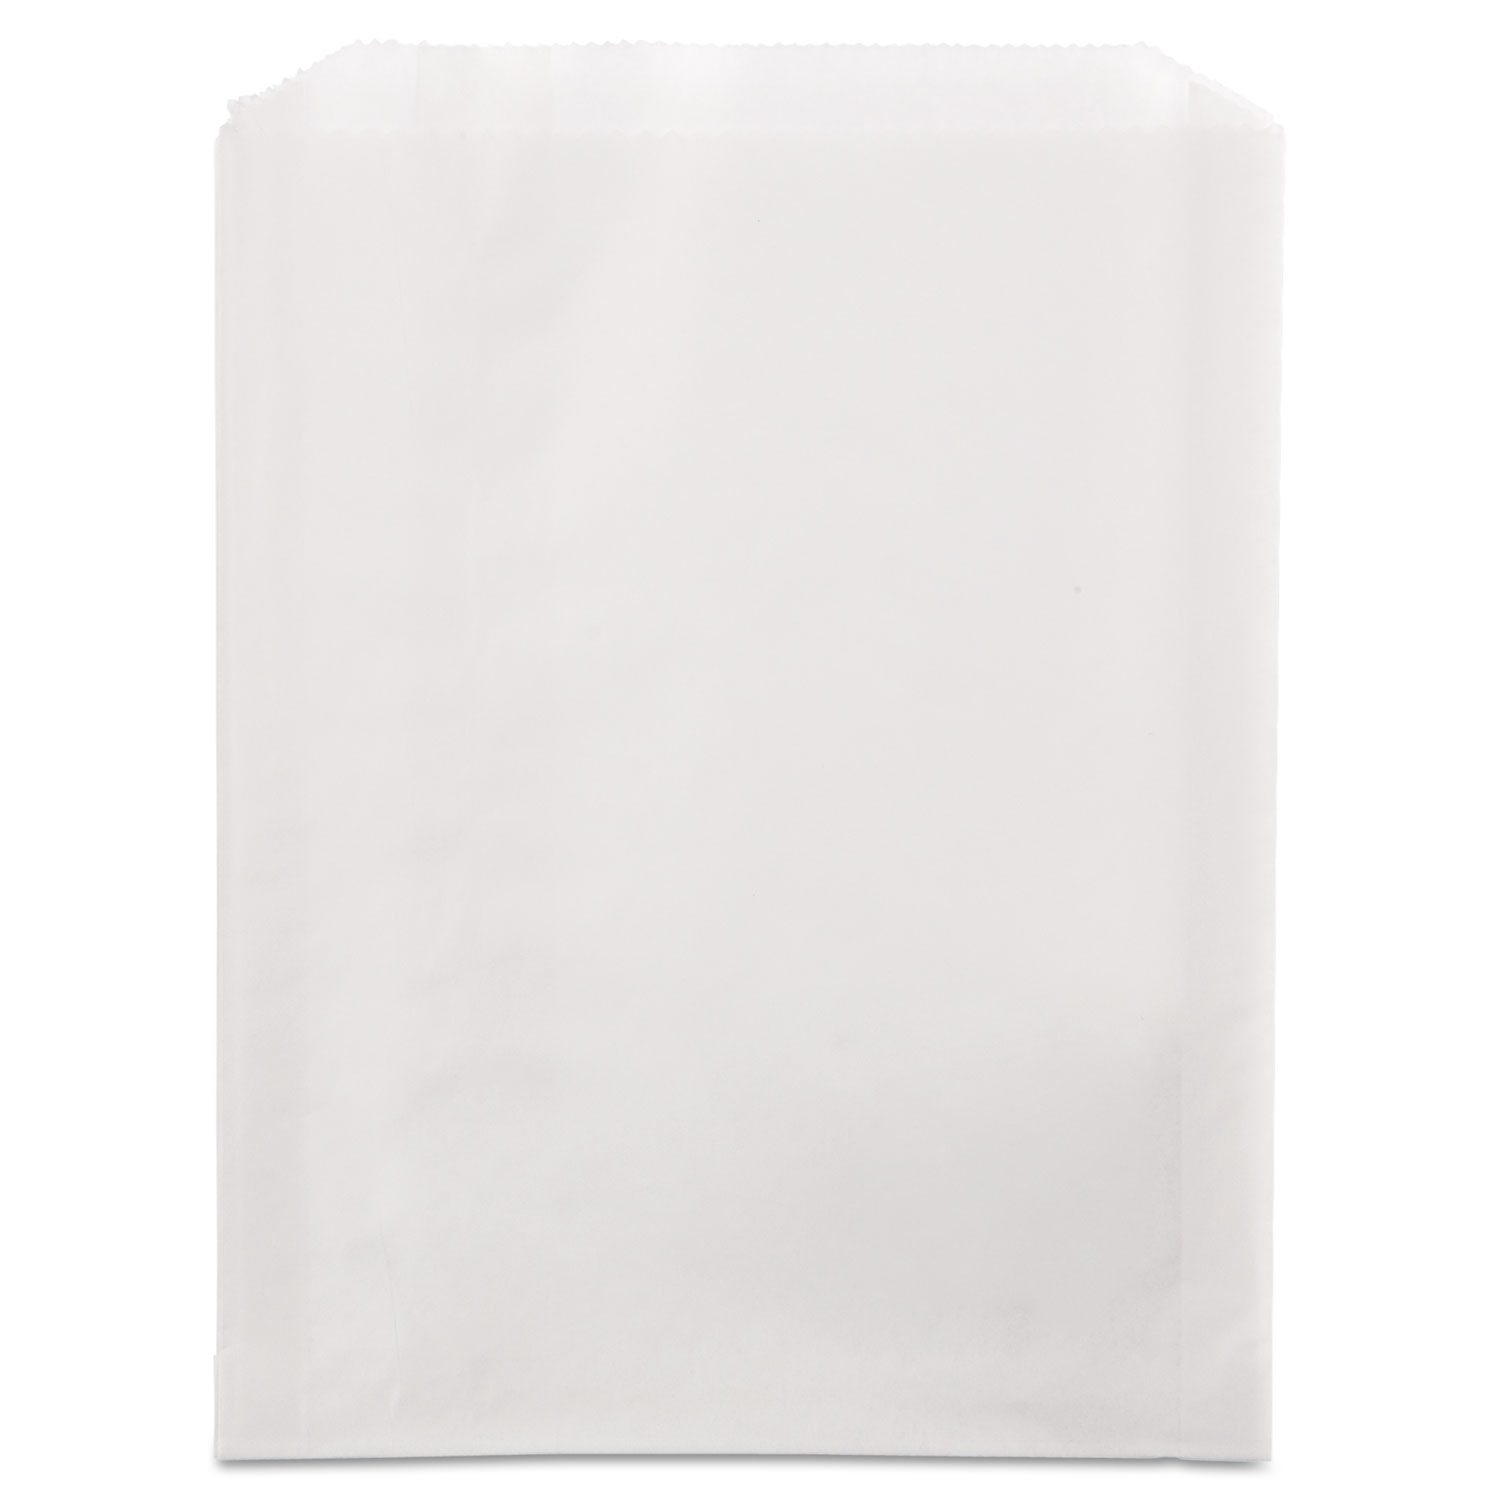 Grease-Resistant Single-Serve Bags, 6.5